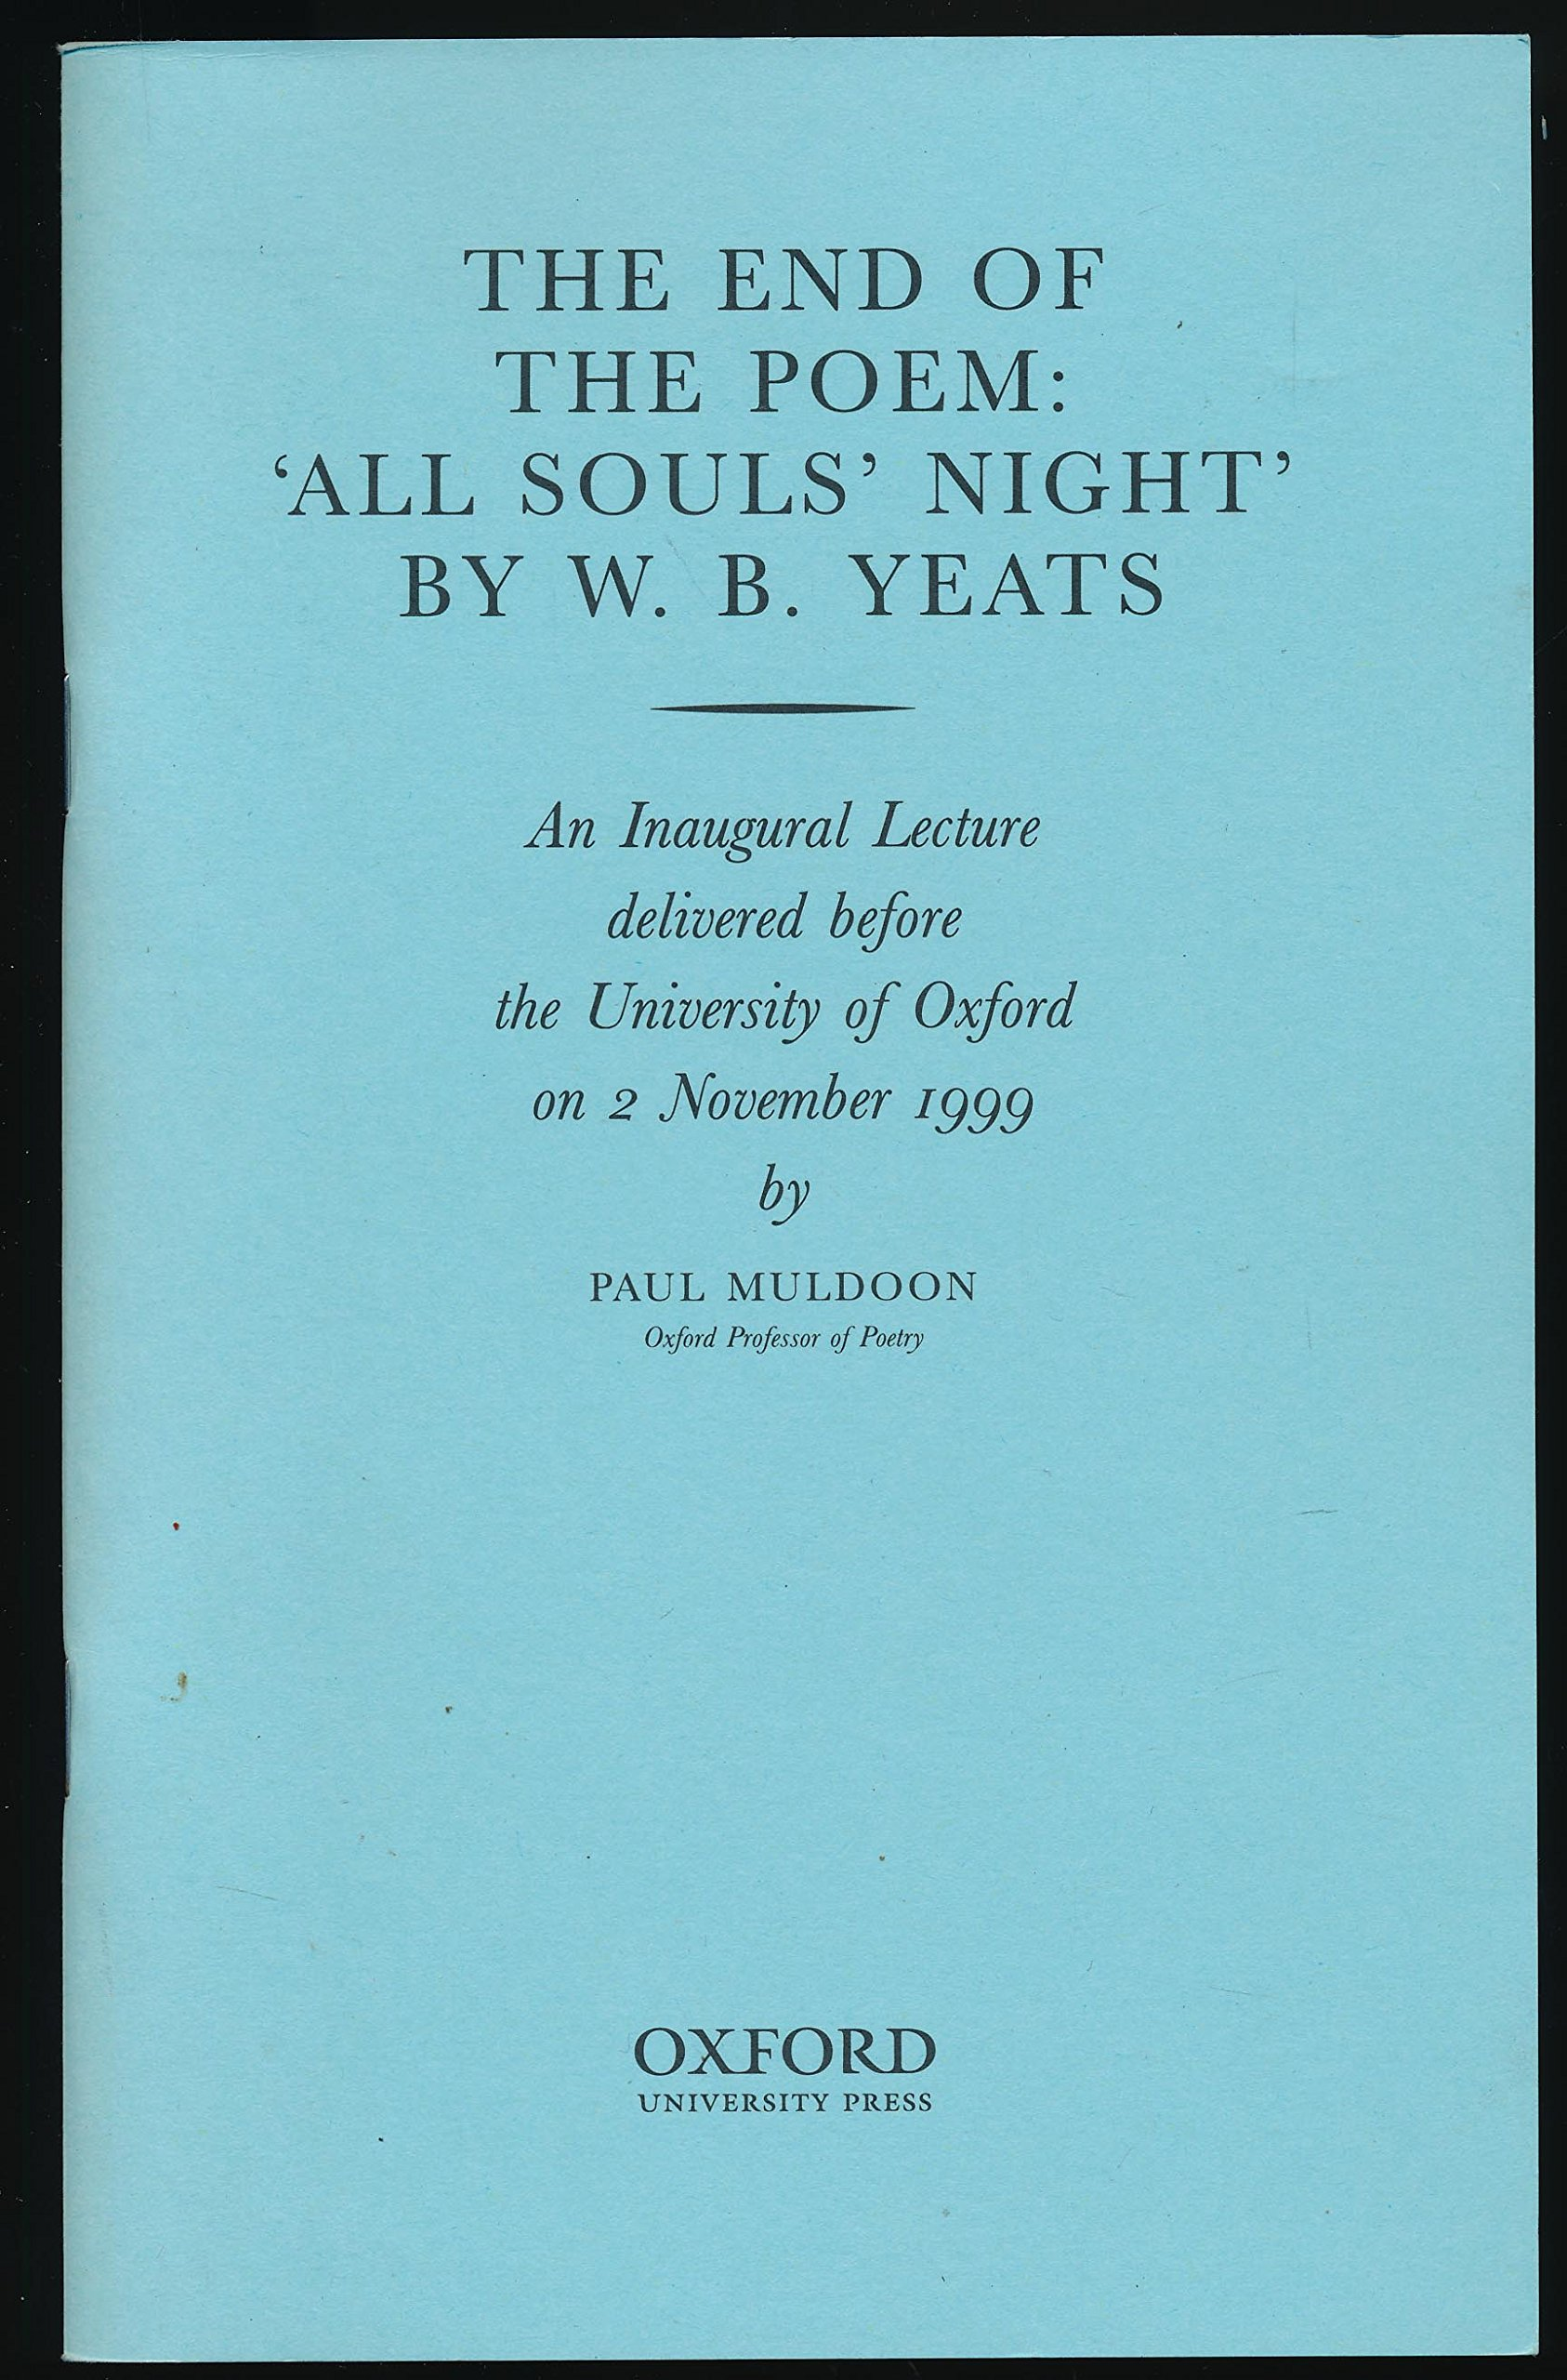 The End of the Poem: All Souls' Night by W.B. Yeats : An Inaugural Lecture Delivered Before the University of Oxford on 2 November 1999 (Inaugural Lectures (University of Oxford)) PDF